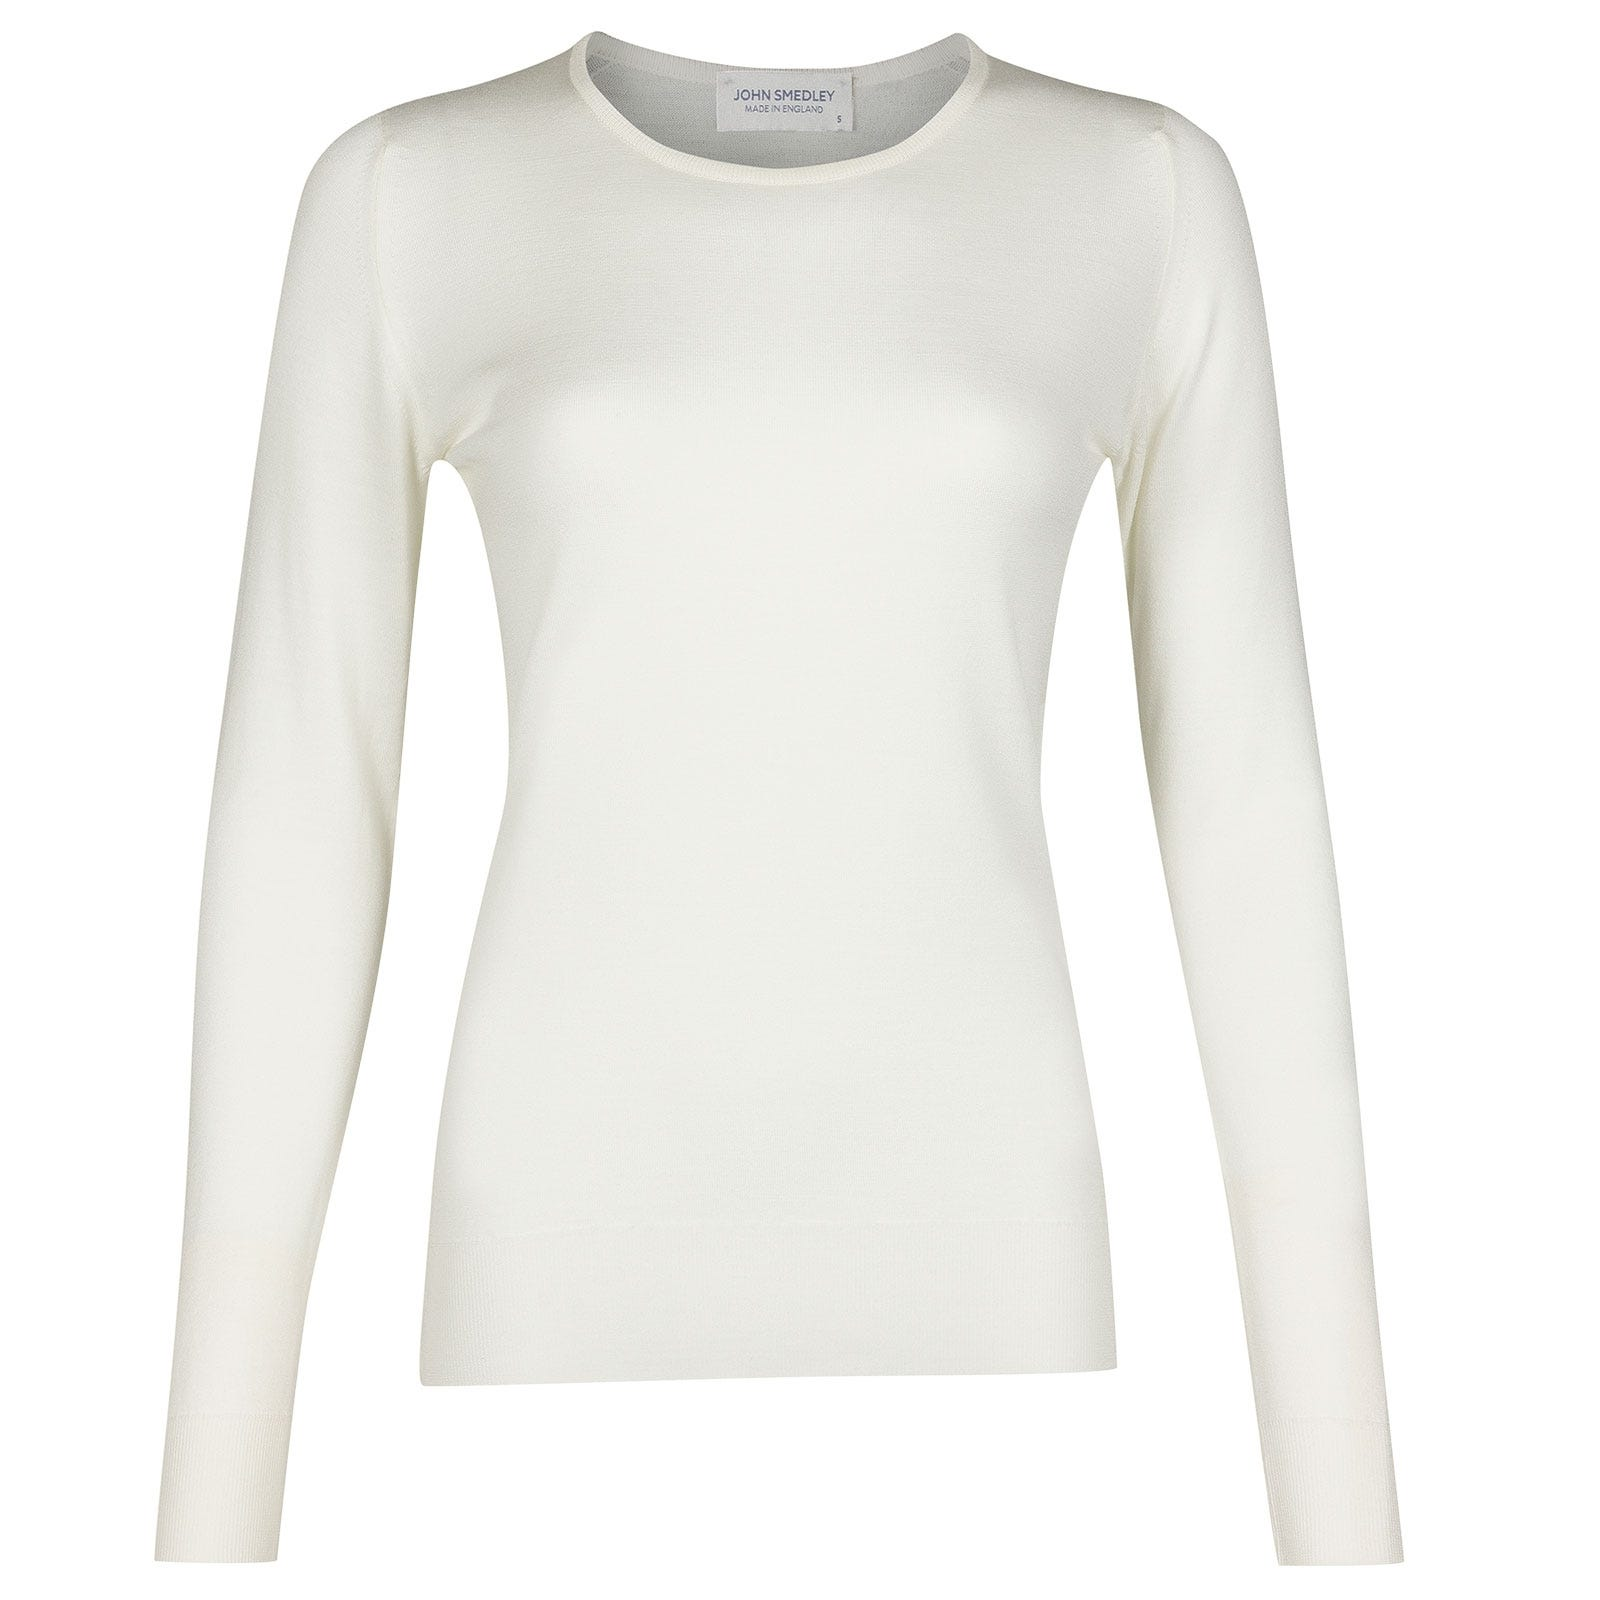 John Smedley Geranium Merino Wool Sweater in Snow White-M